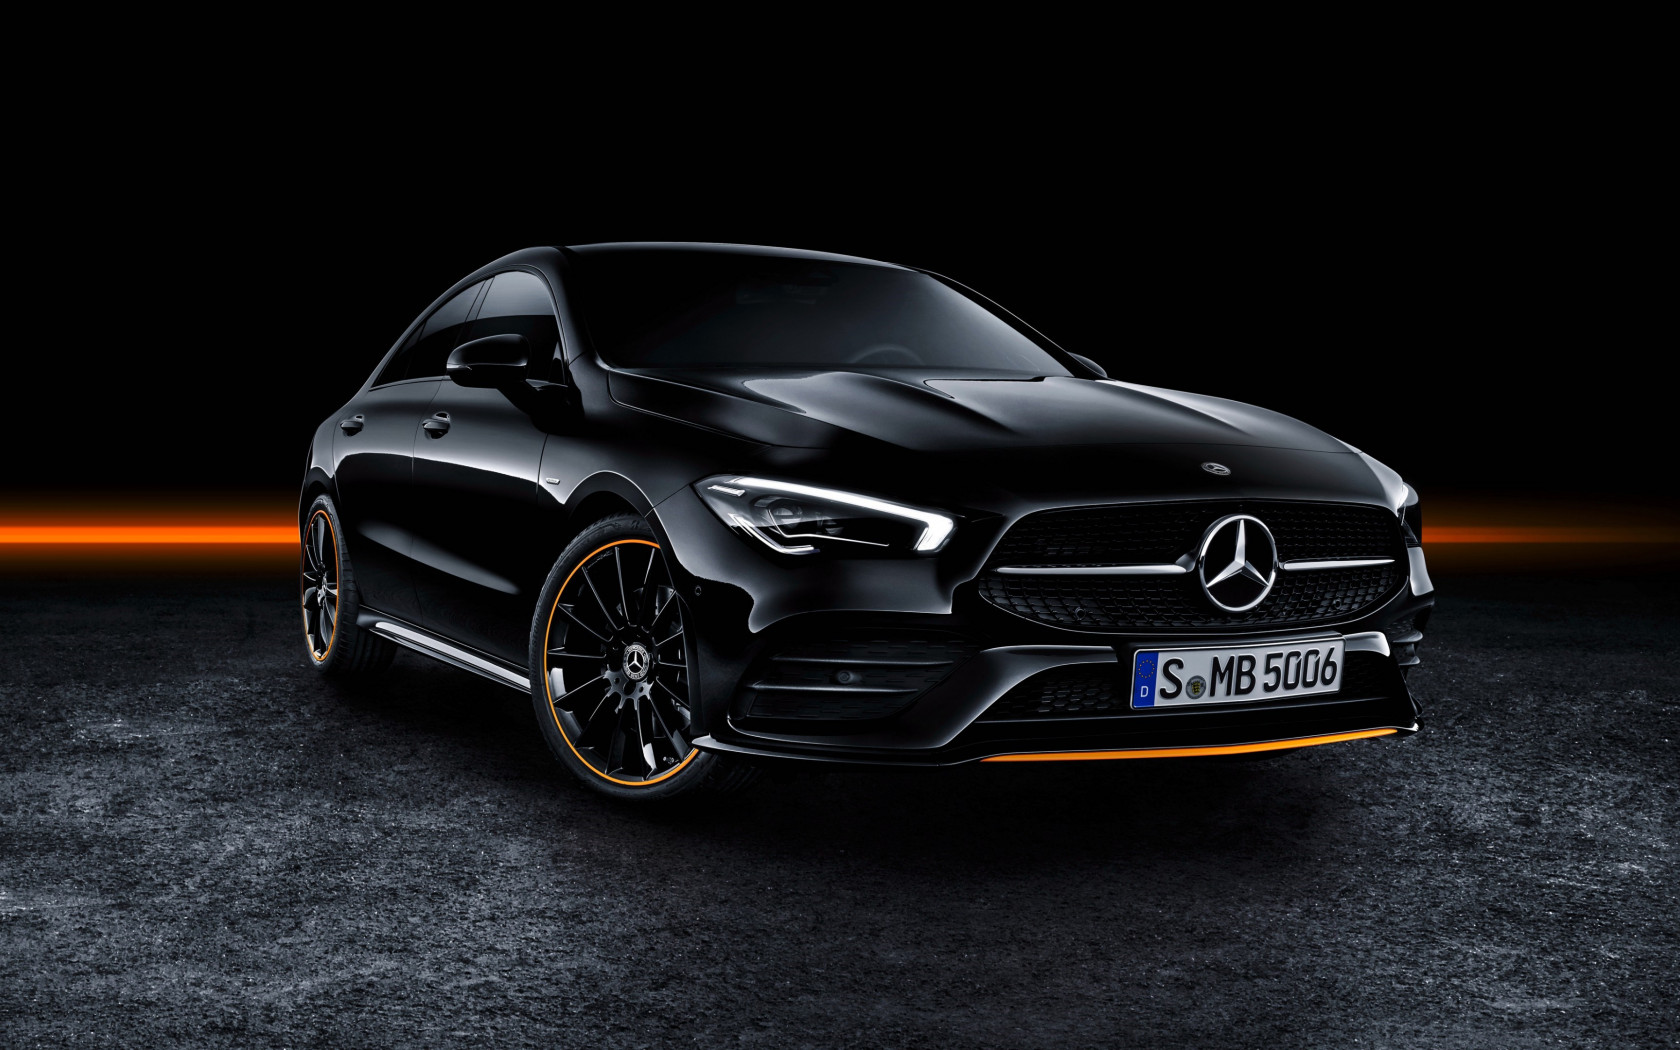 Mercedes Benz CLA 250 AMG | 1680x1050 wallpaper